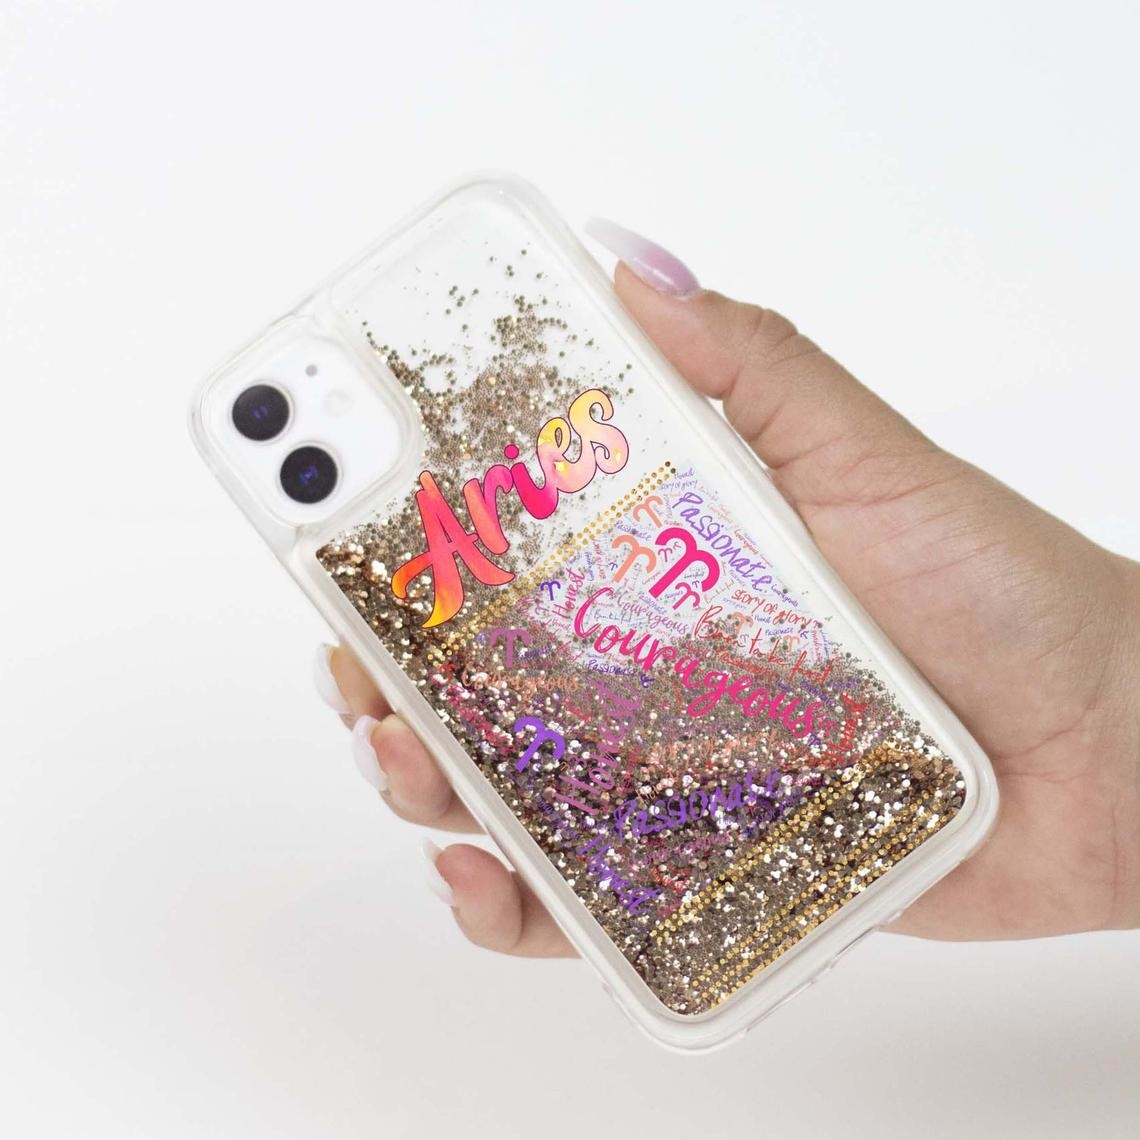 A person holding the Aries phone case